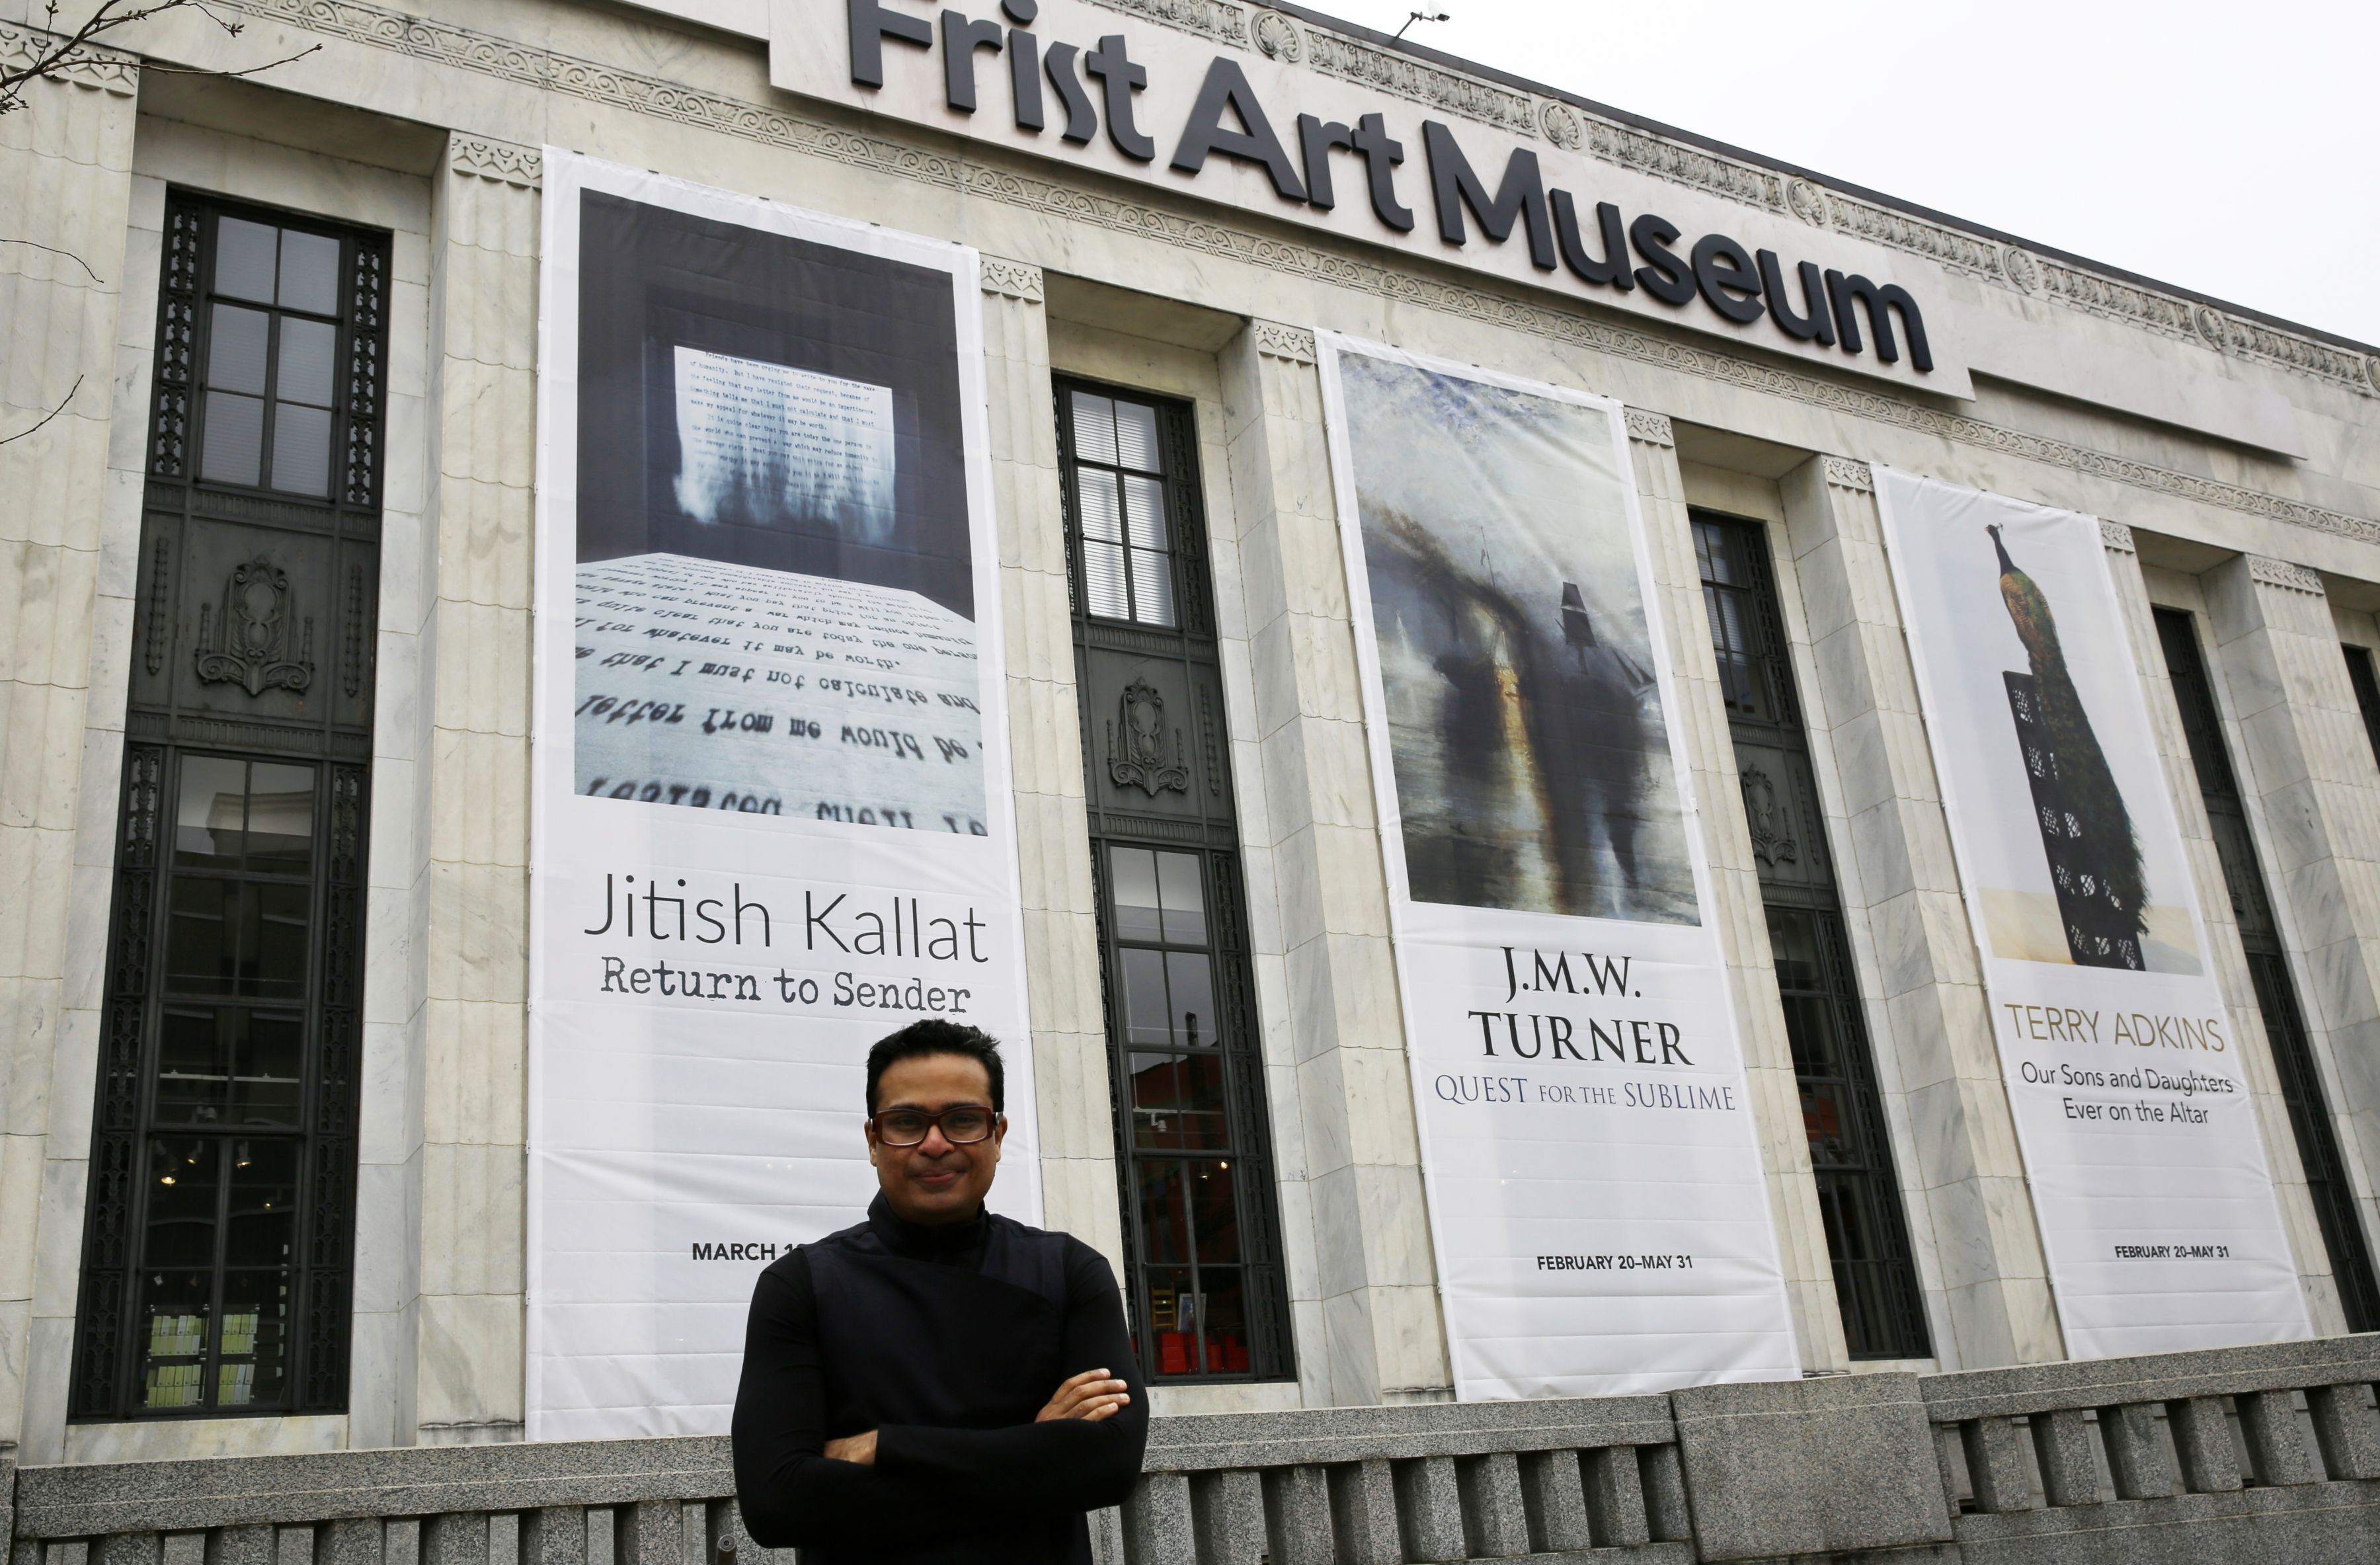 Photo of the artist standing in front of the Frist Art Museum where a banner with his name hangs on the facade